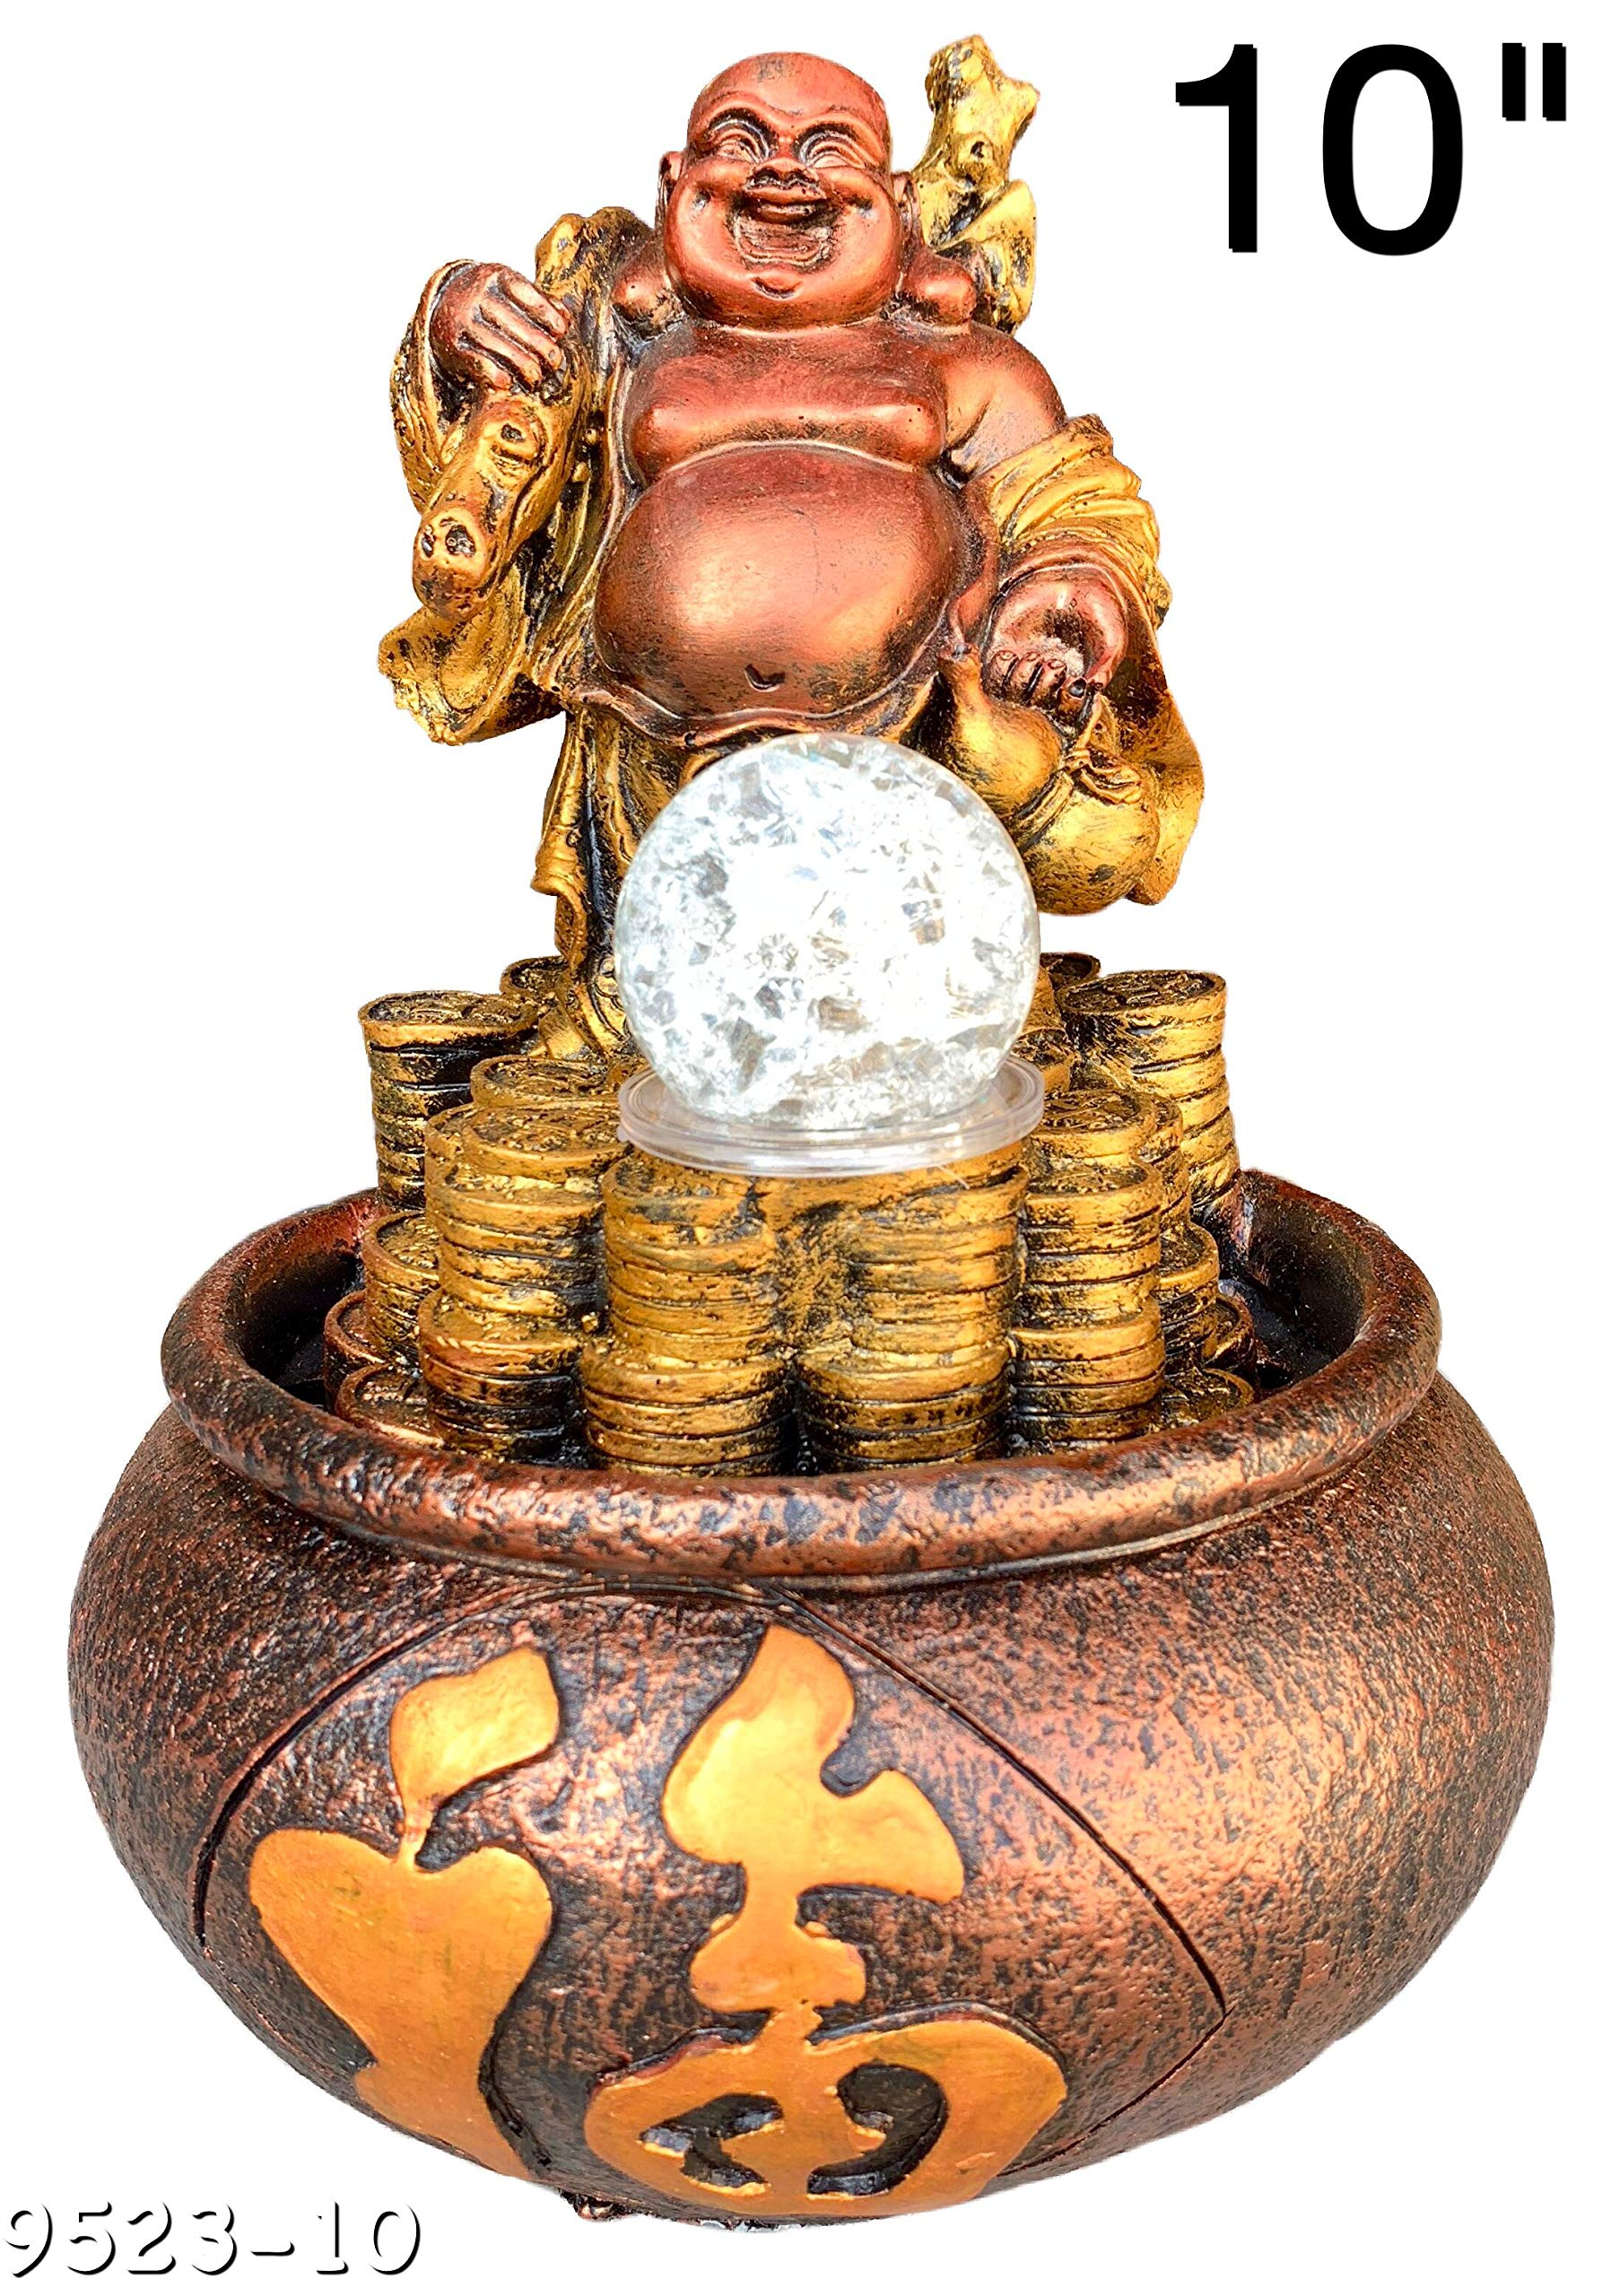 Buddha Water Fountain Led Light Indoor/Outdoor Water Pump Included 10'' Inch Statue